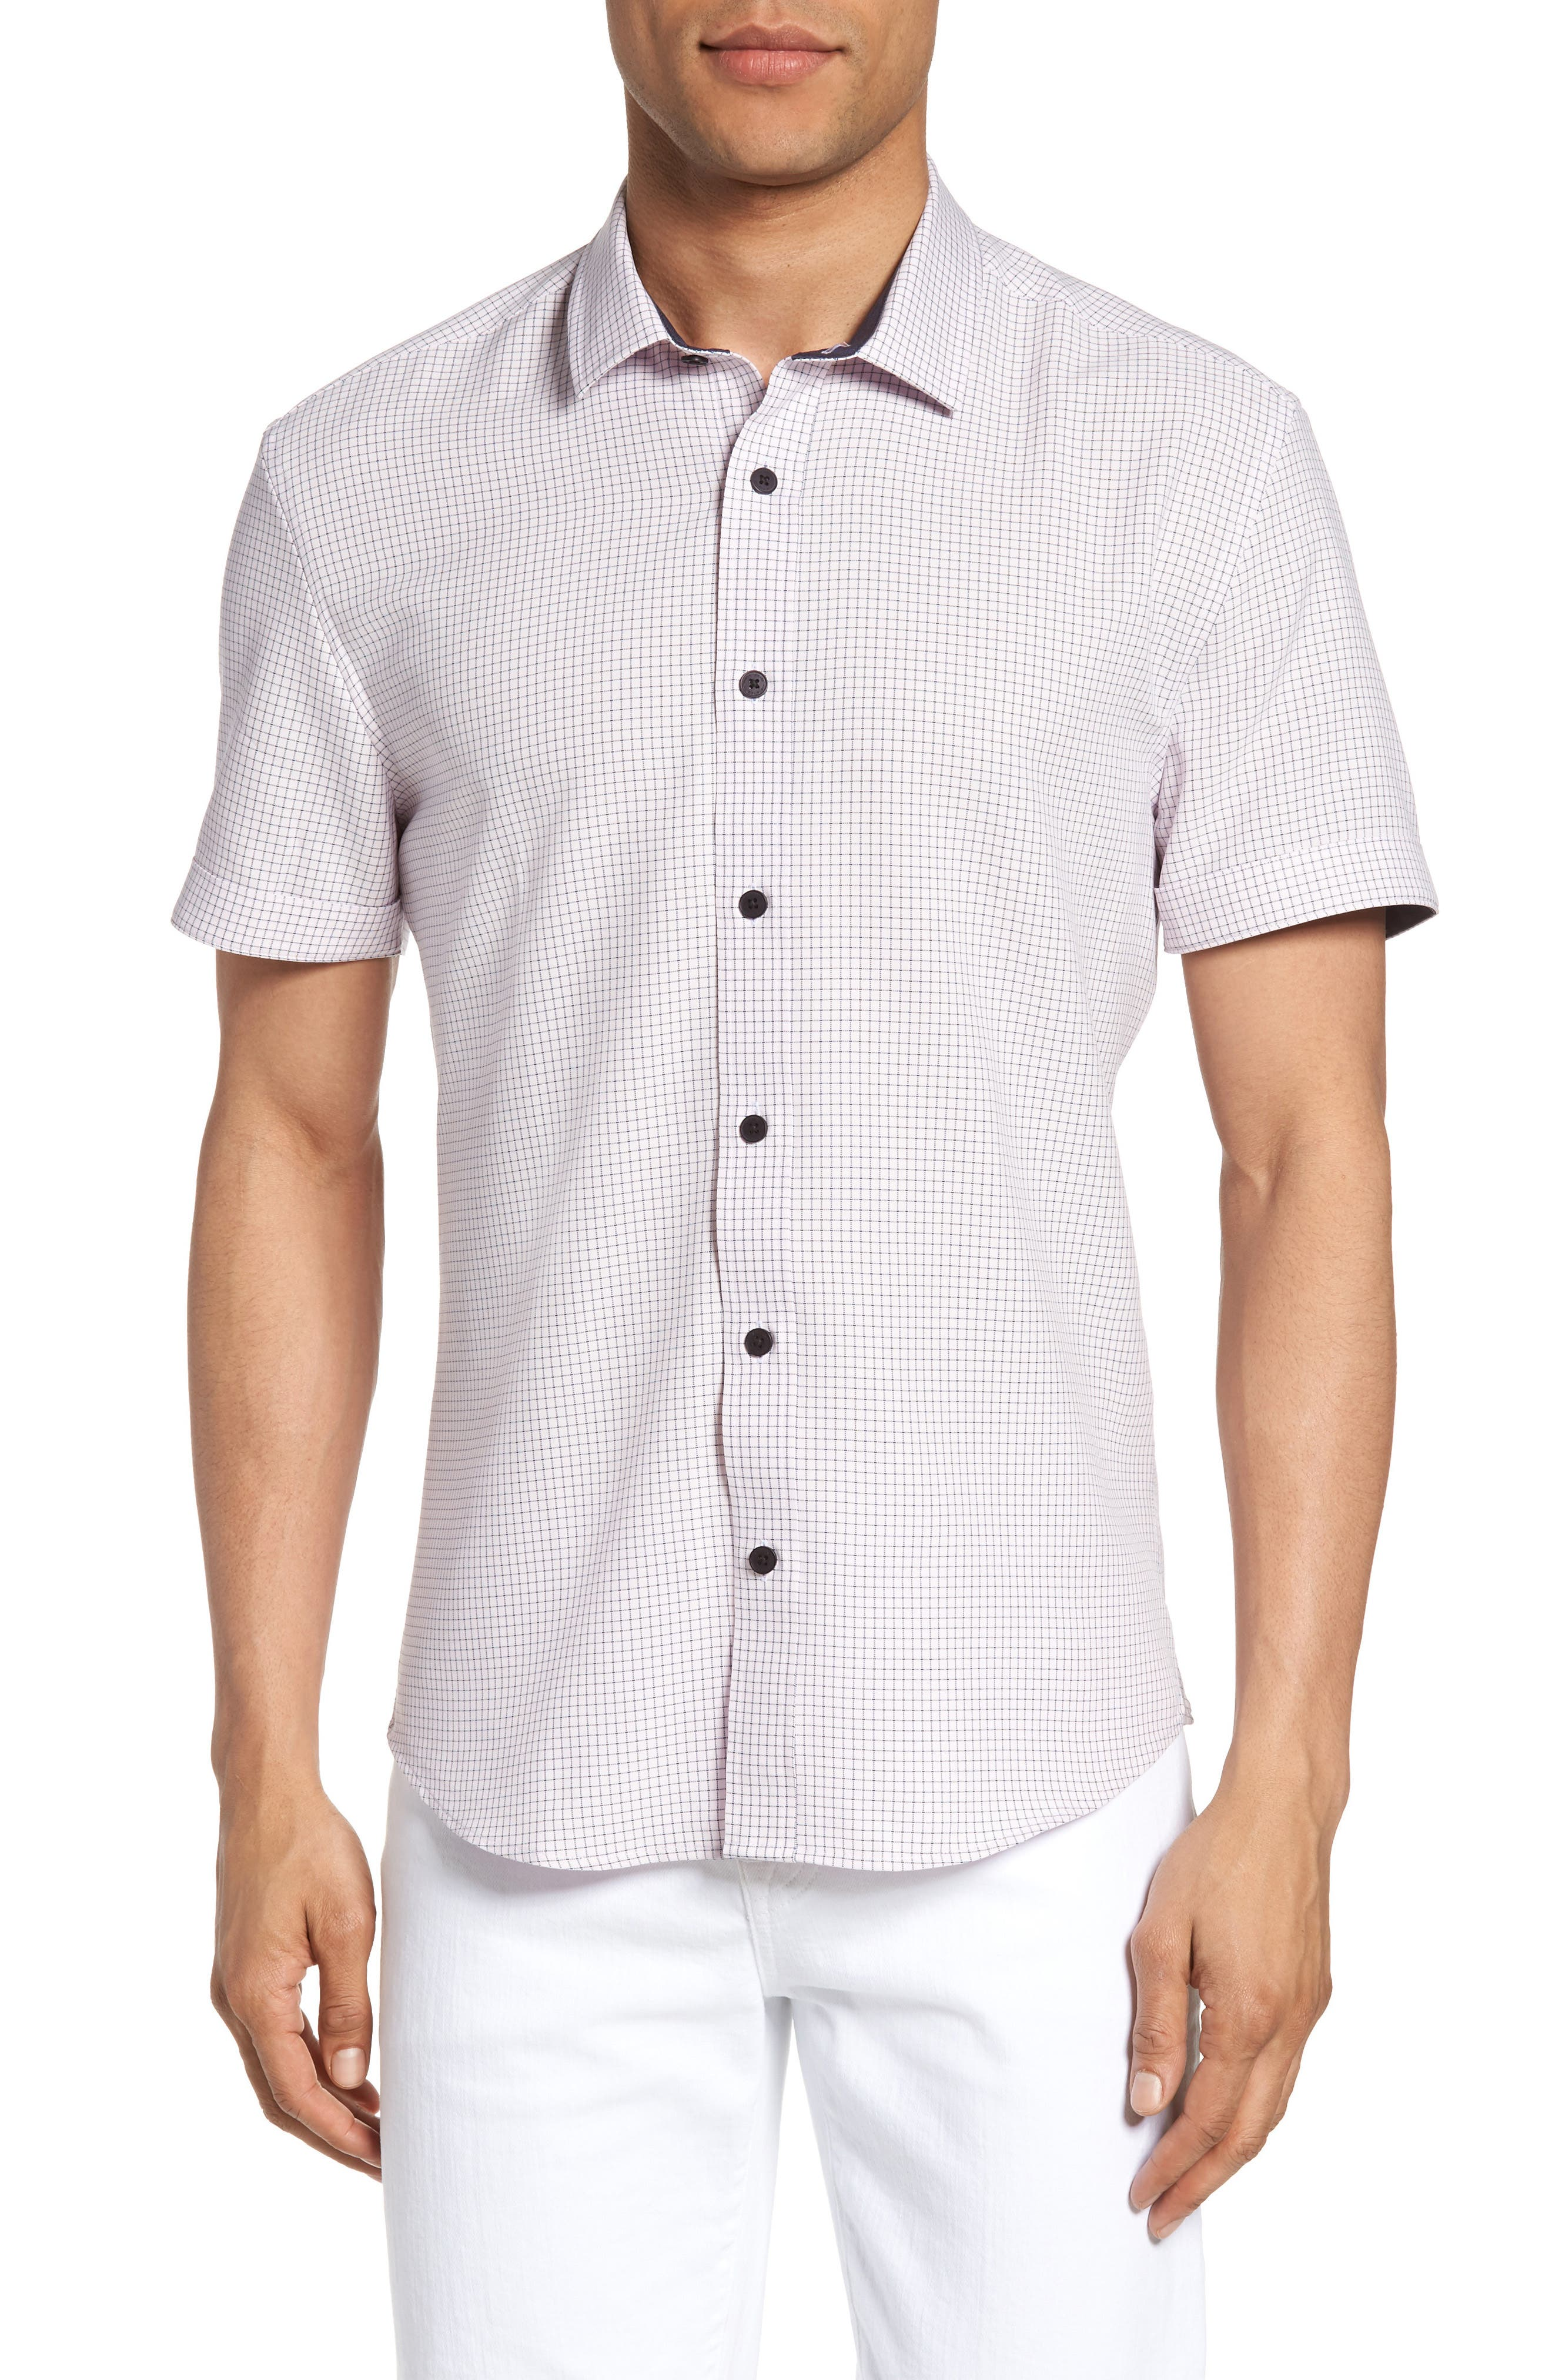 Alternate Image 1 Selected - Vince Camuto Check Sport Shirt